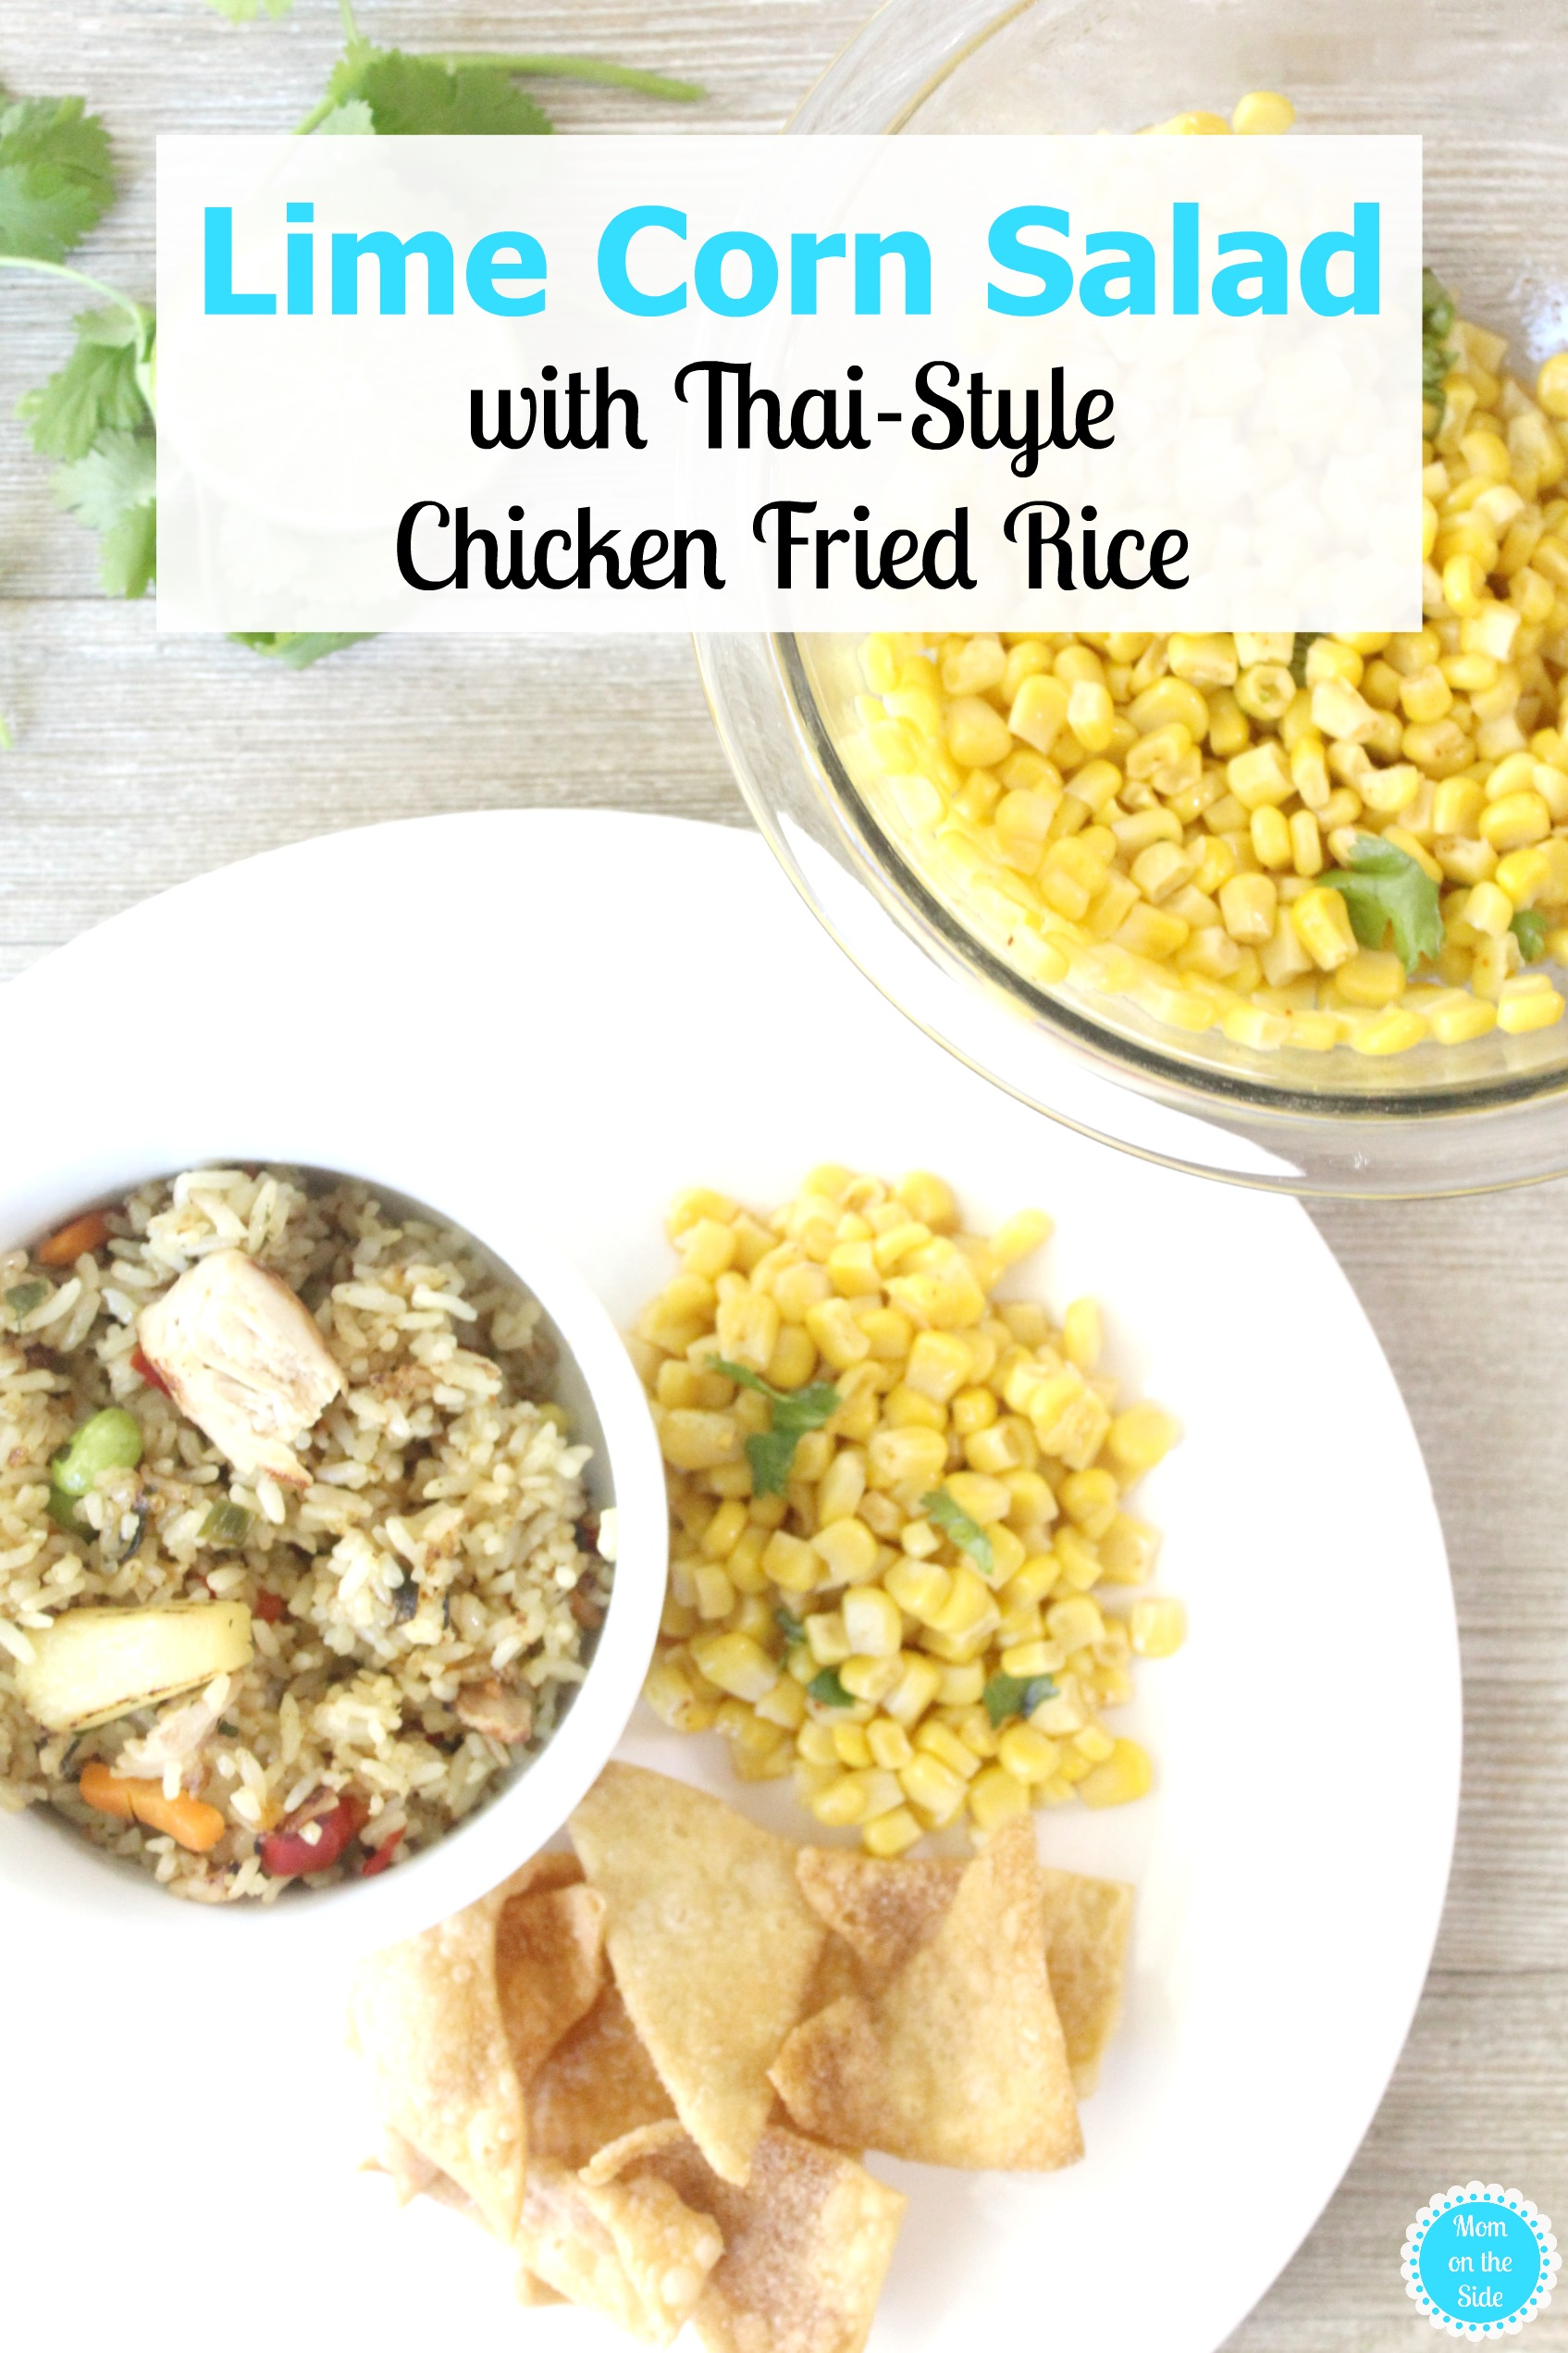 Easy Lime Corn Salad Recipe with Thai-Style Chicken Fried Rice